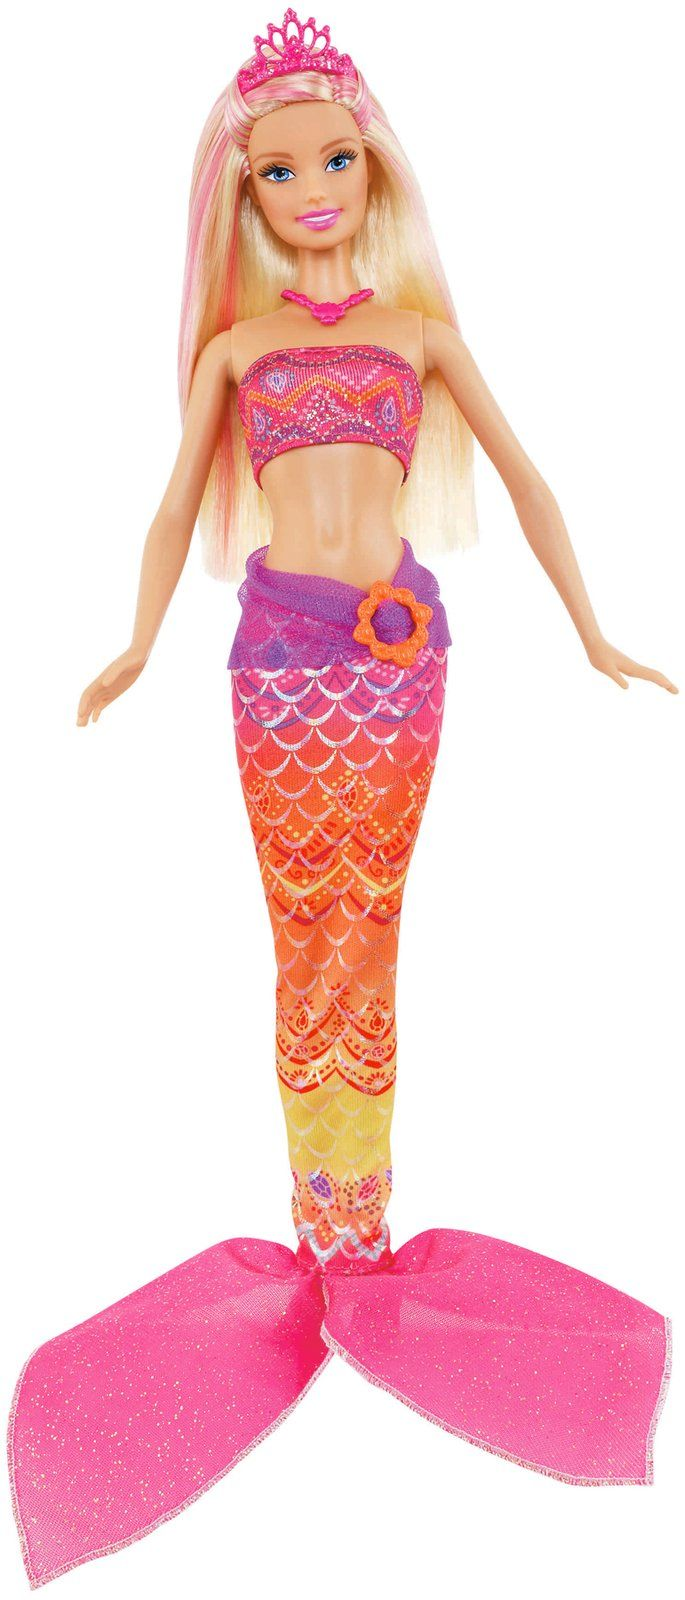 Barbie in a mermaid tale 2 merliah doll gift set free shipping dolls barbie esque barbie - Barbi sirene 2 film ...